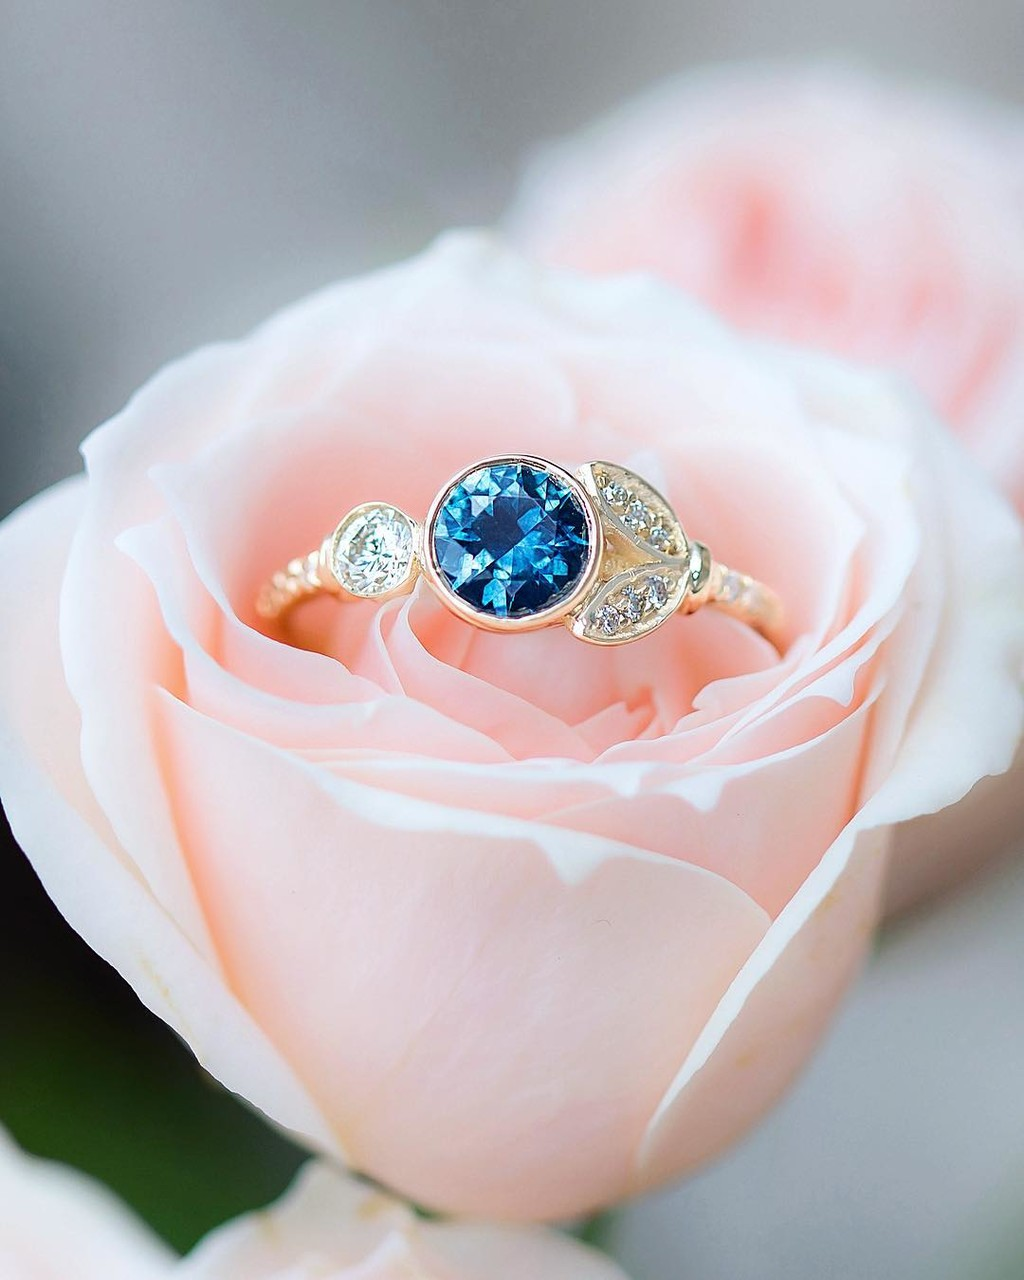 Lunette Lovers Rejoice!!! 🌸💙✨Just listed a new richly saturated simply stunning Blue Sapphire from Montana set in our delicately